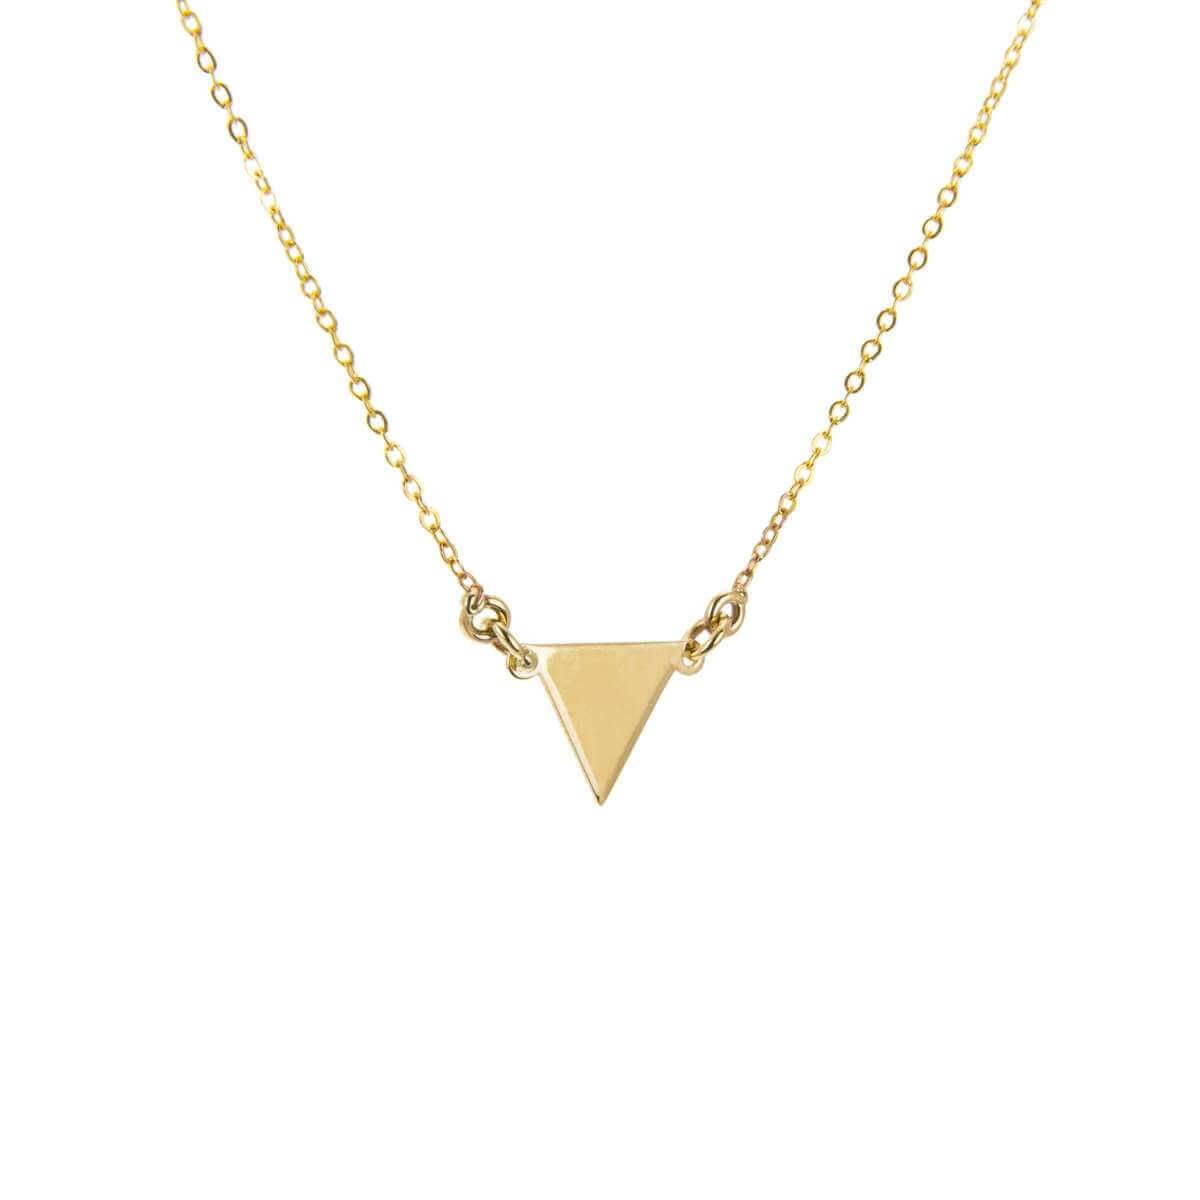 9ct Yellow Gold Flat Triangle Pendant Necklace